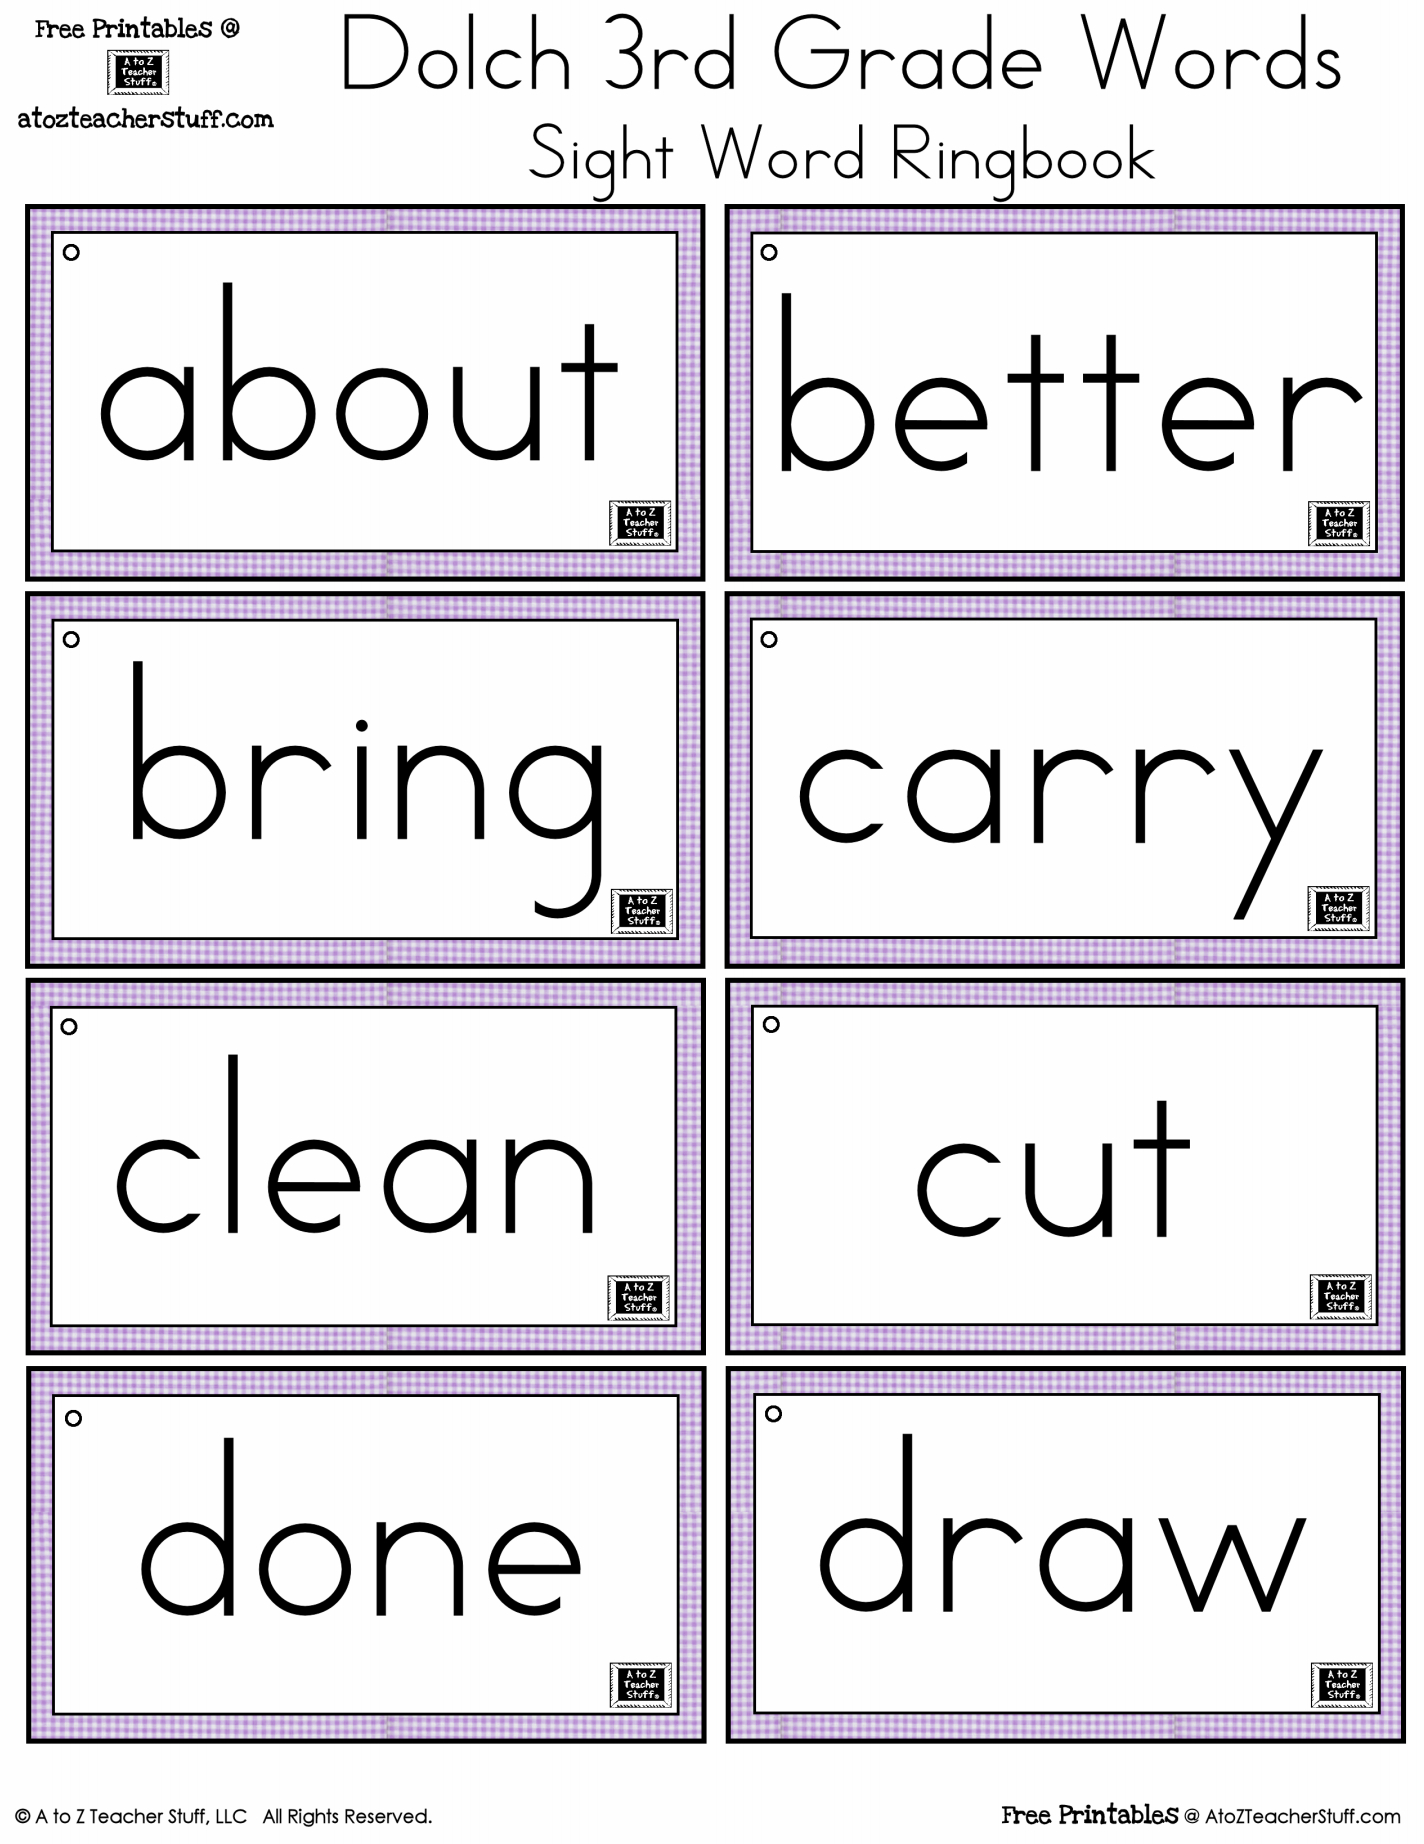 Free Printable Dolch Sight Words Worksheets